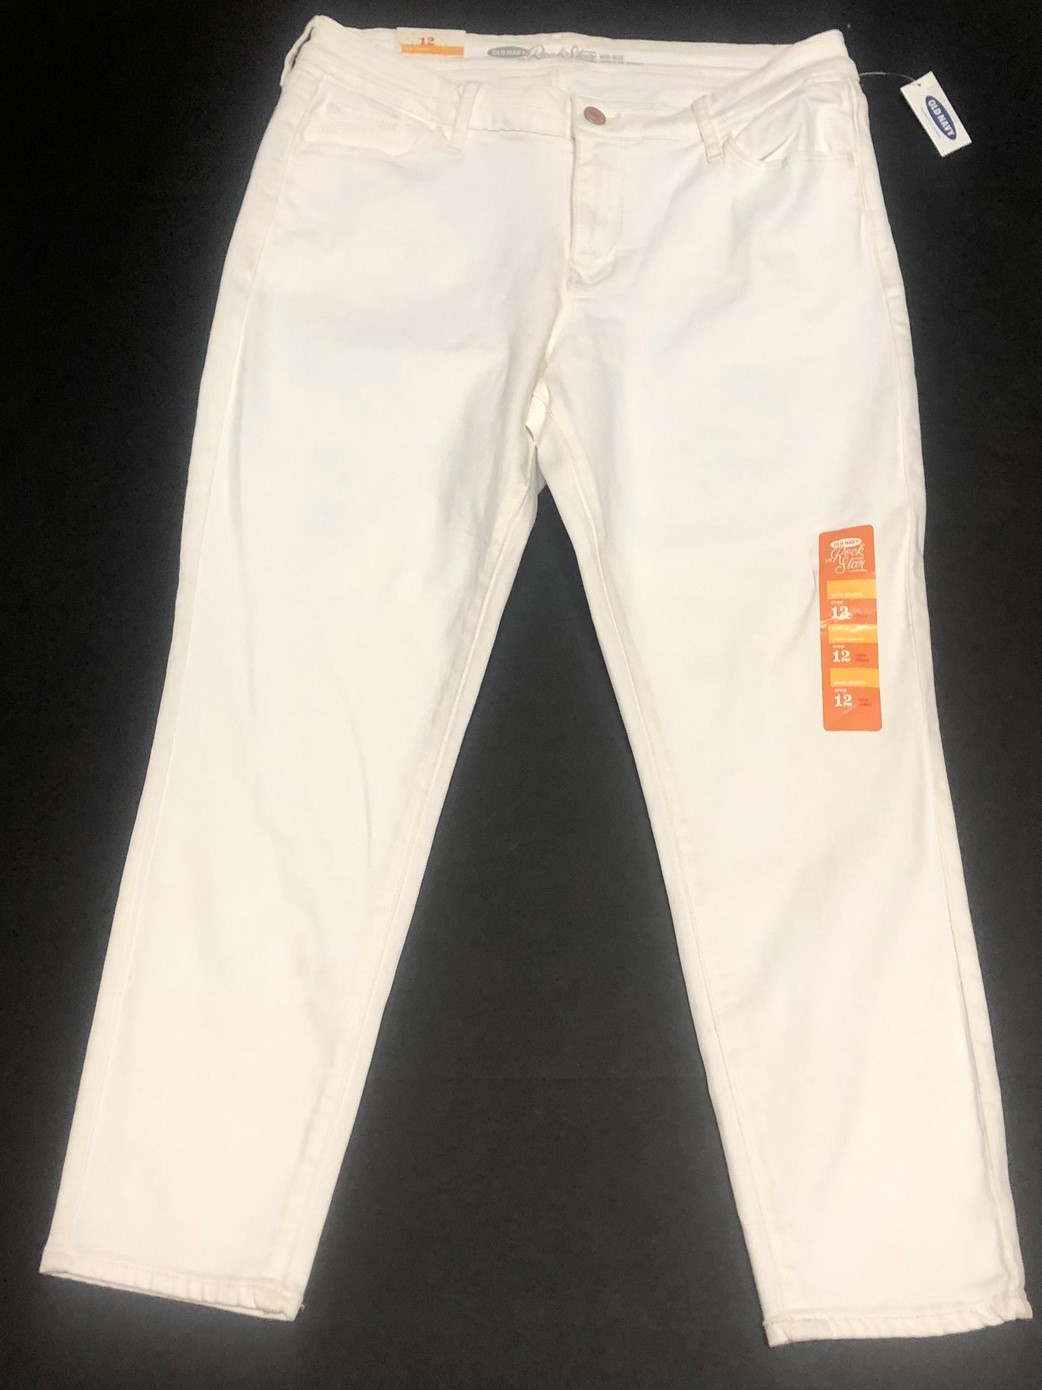 Old Navy Rock Star White Crop Jeans Sz 12 image 2